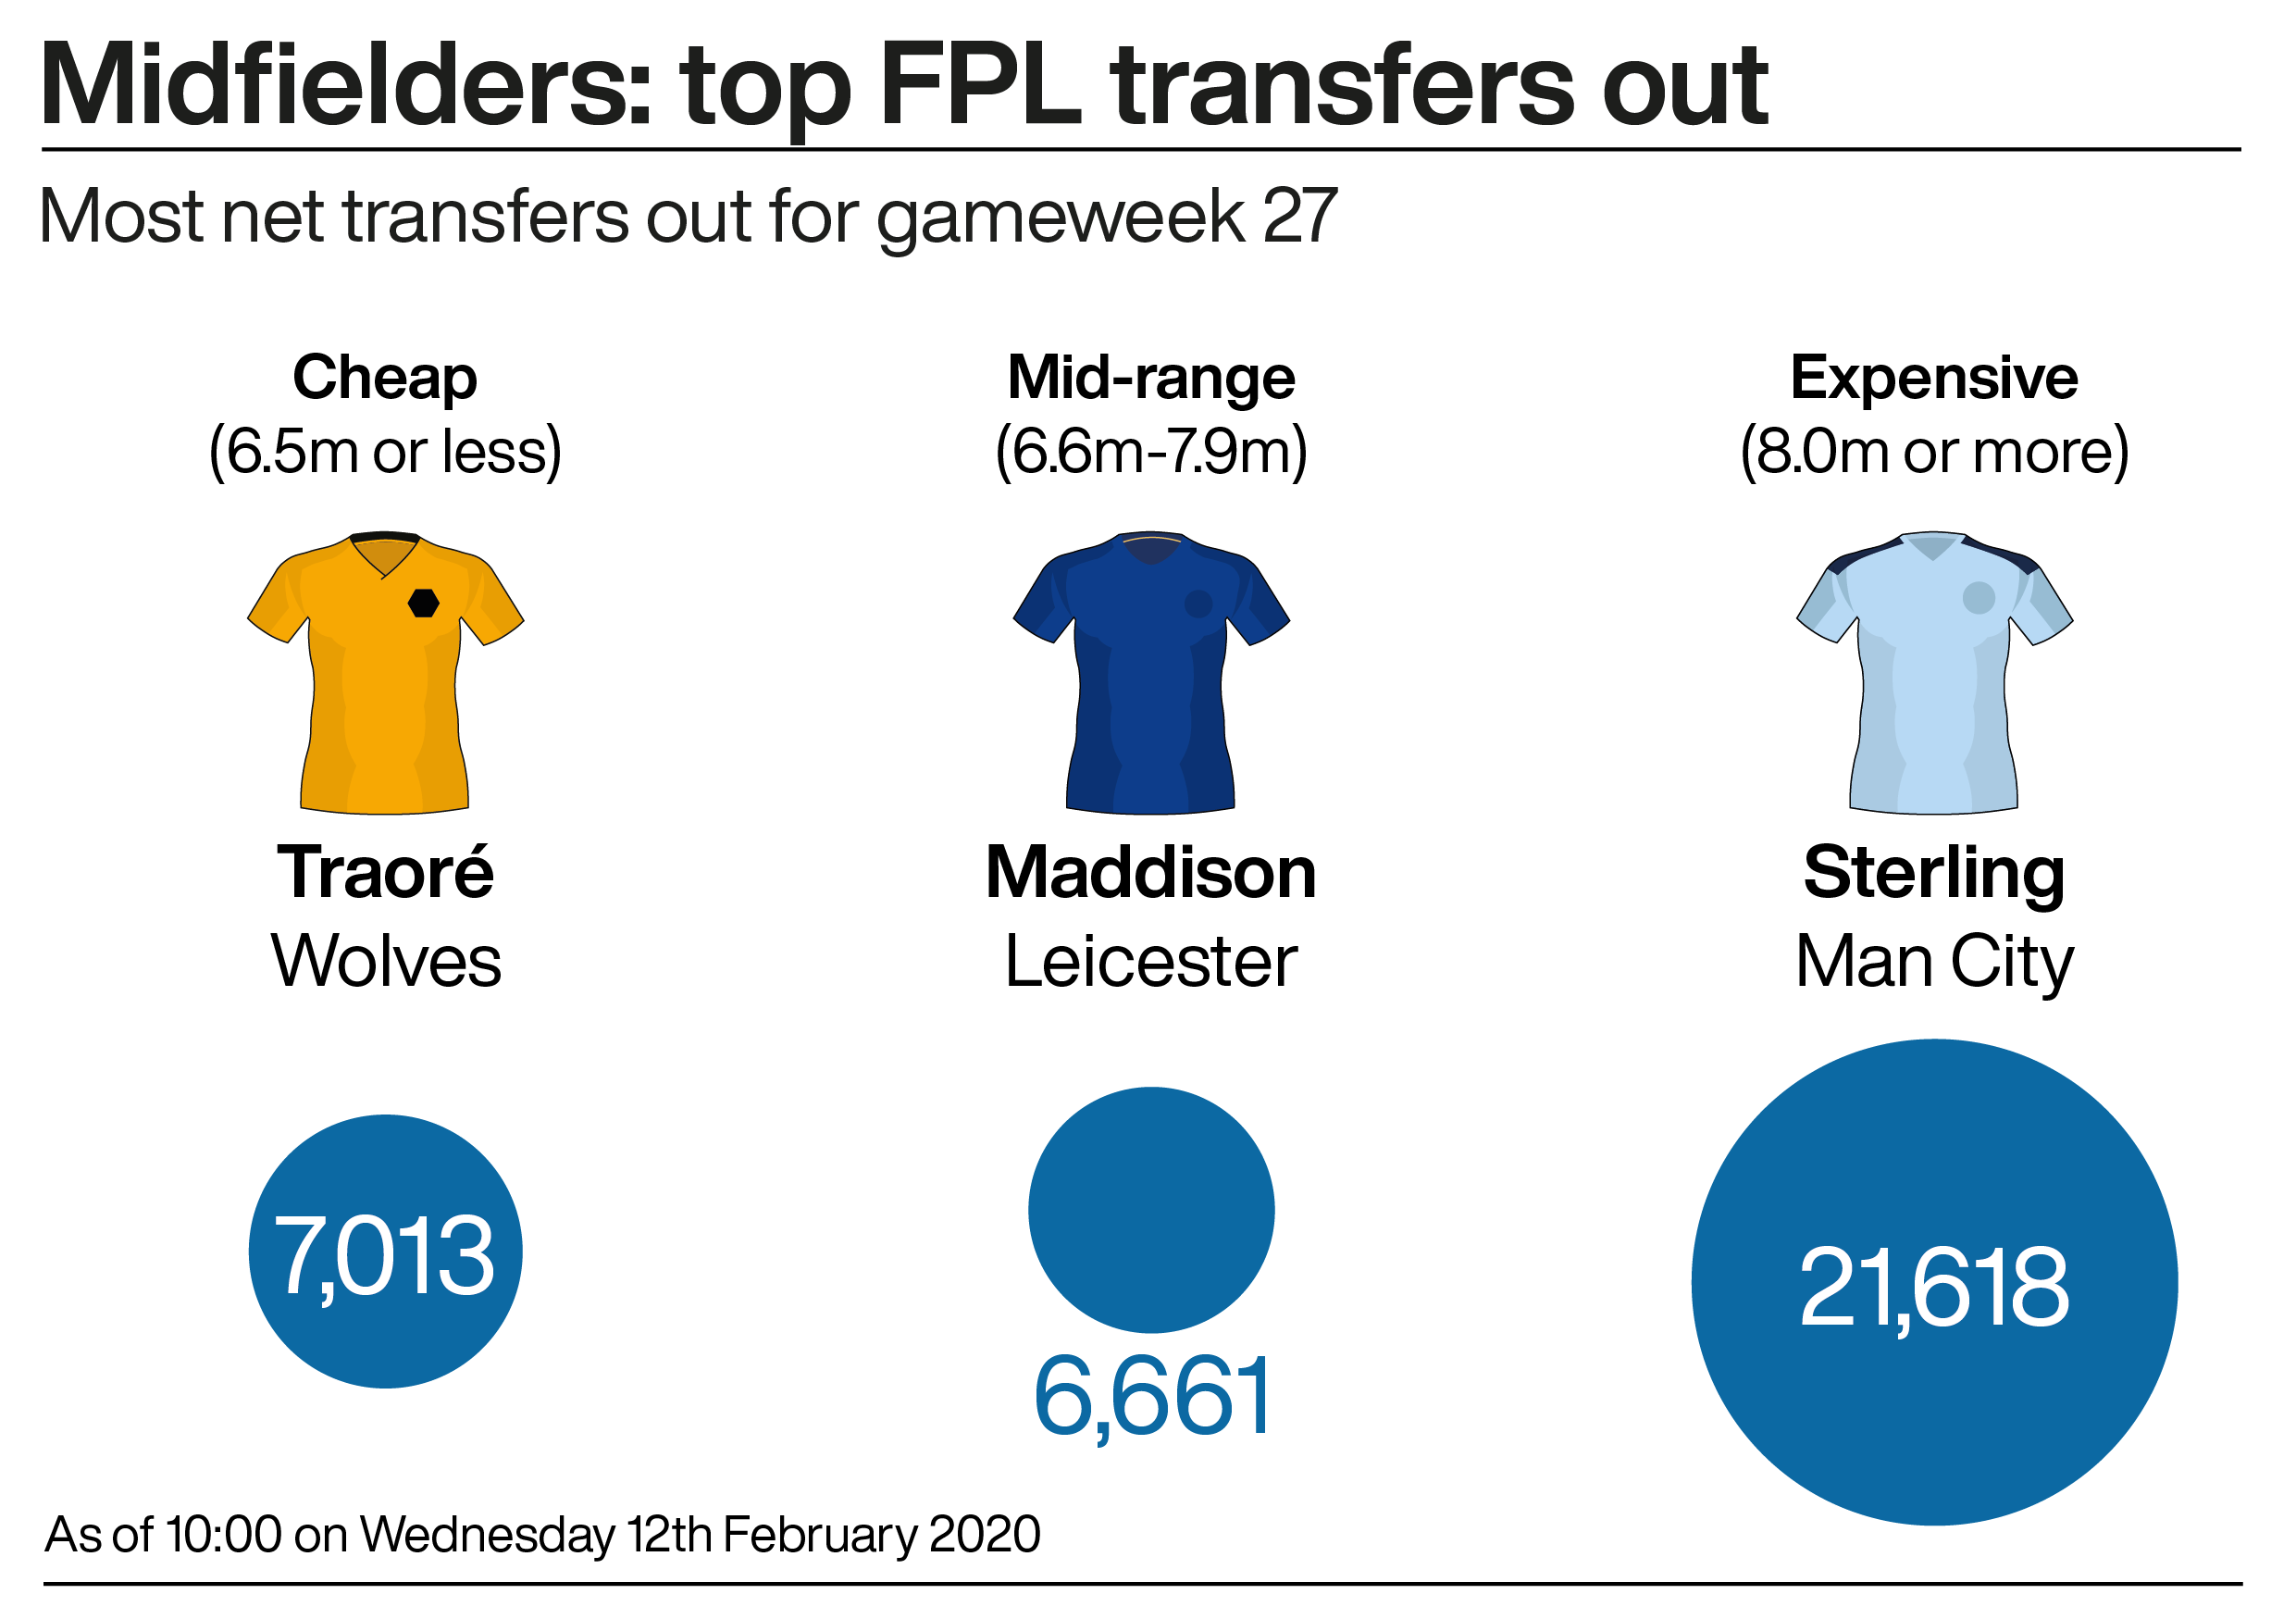 A graphic showing the most popular Fantasy Premier League midfielders ahead of gameweek 27